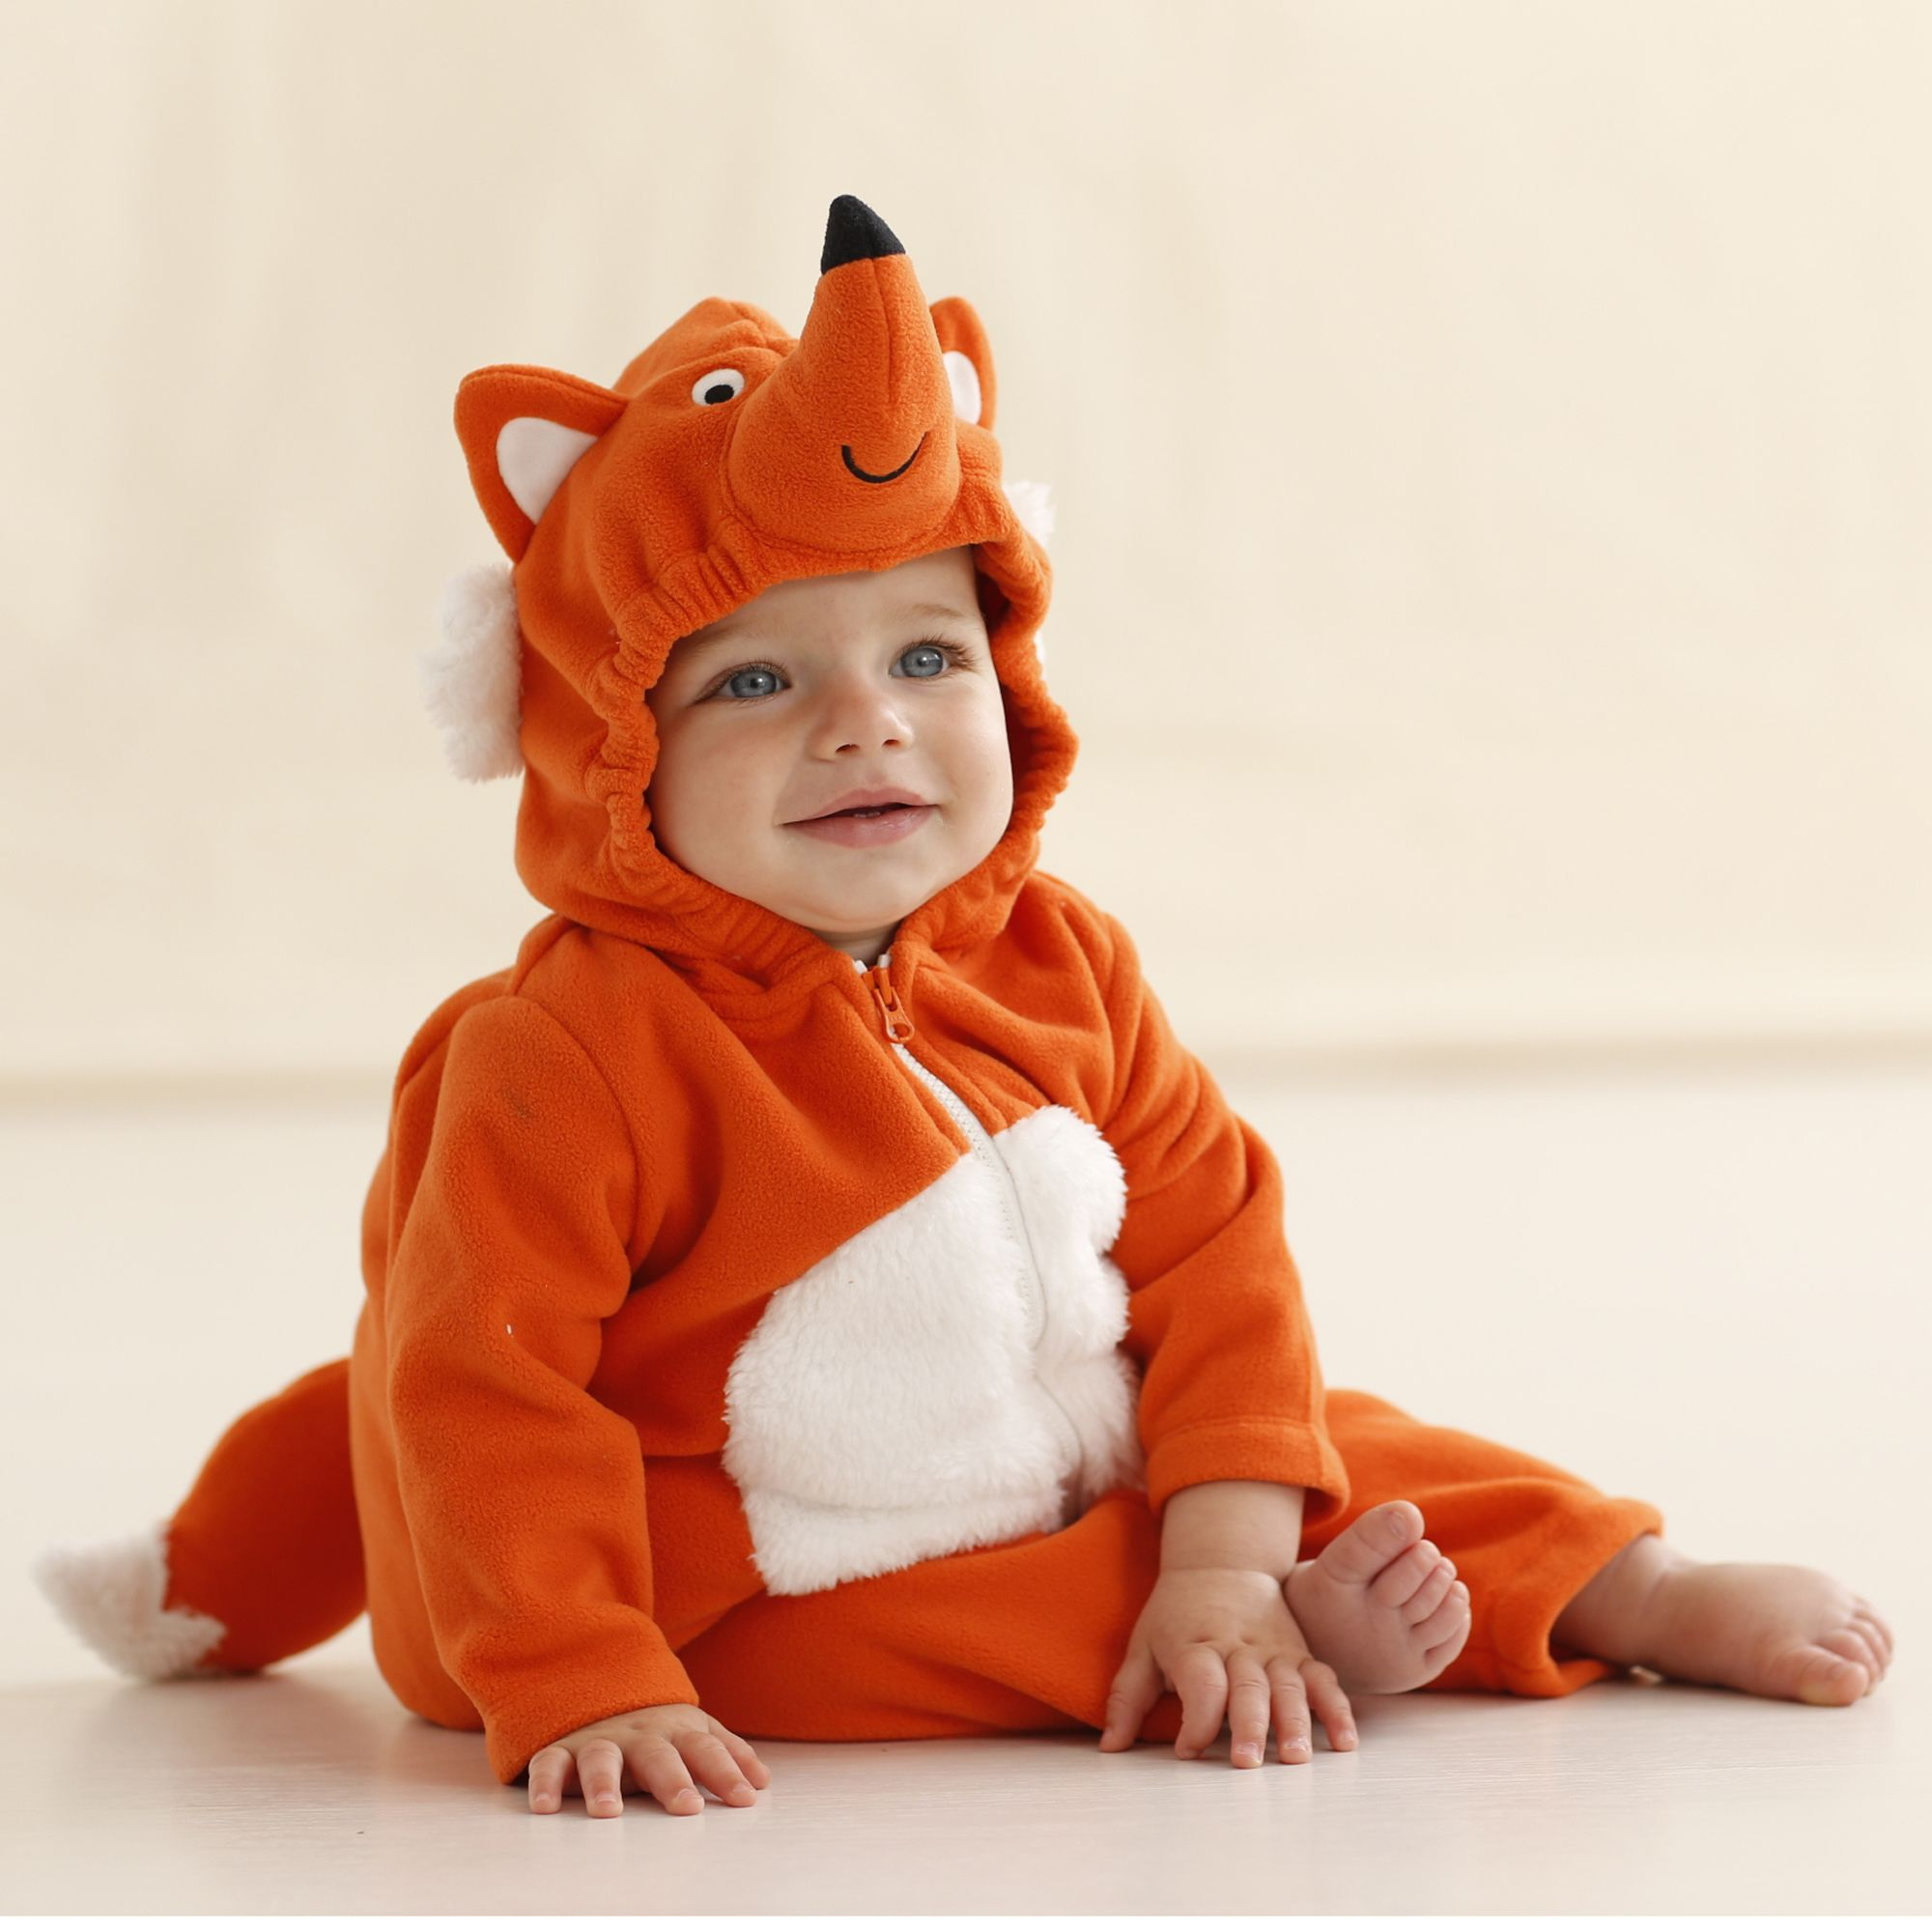 65afadd41 Fox costume for baby. Add another tail and large white gloves and you have  a Tails costume (from Sonic the Hedgehog).